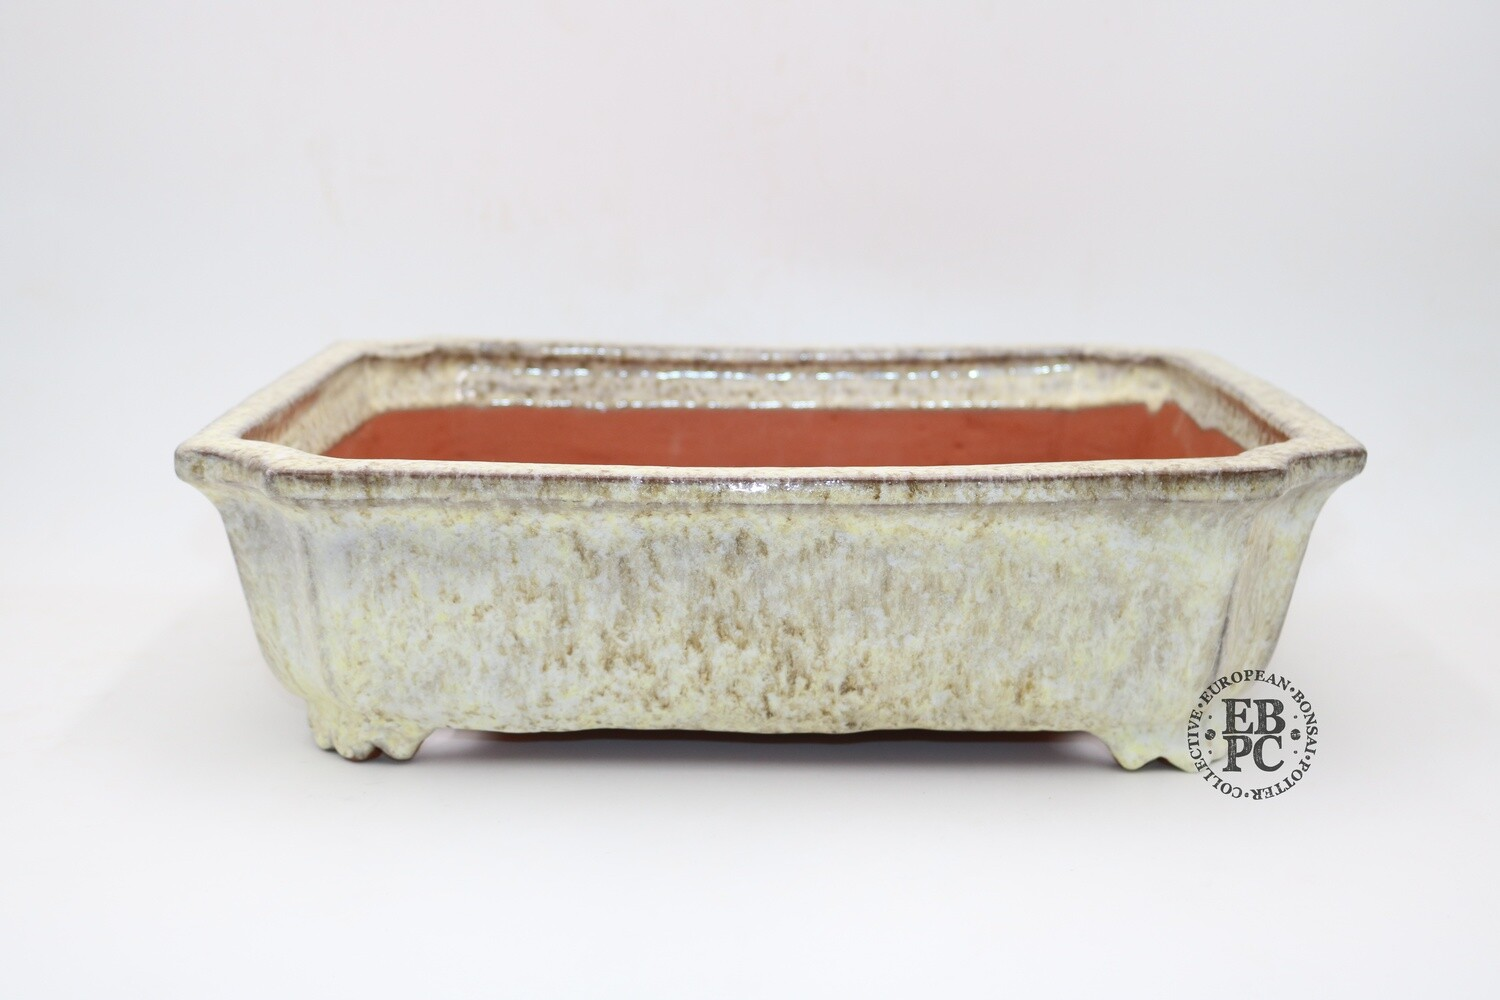 SHUHU of Tokoname -  EBPC stamped pot; 40cm; Rectangle; Curve Cut Corners; Intricate Drippy Glaze; White, Greens & Browns; 'Honorary European'; Limited Edn; Signed and EBPC Stamped.